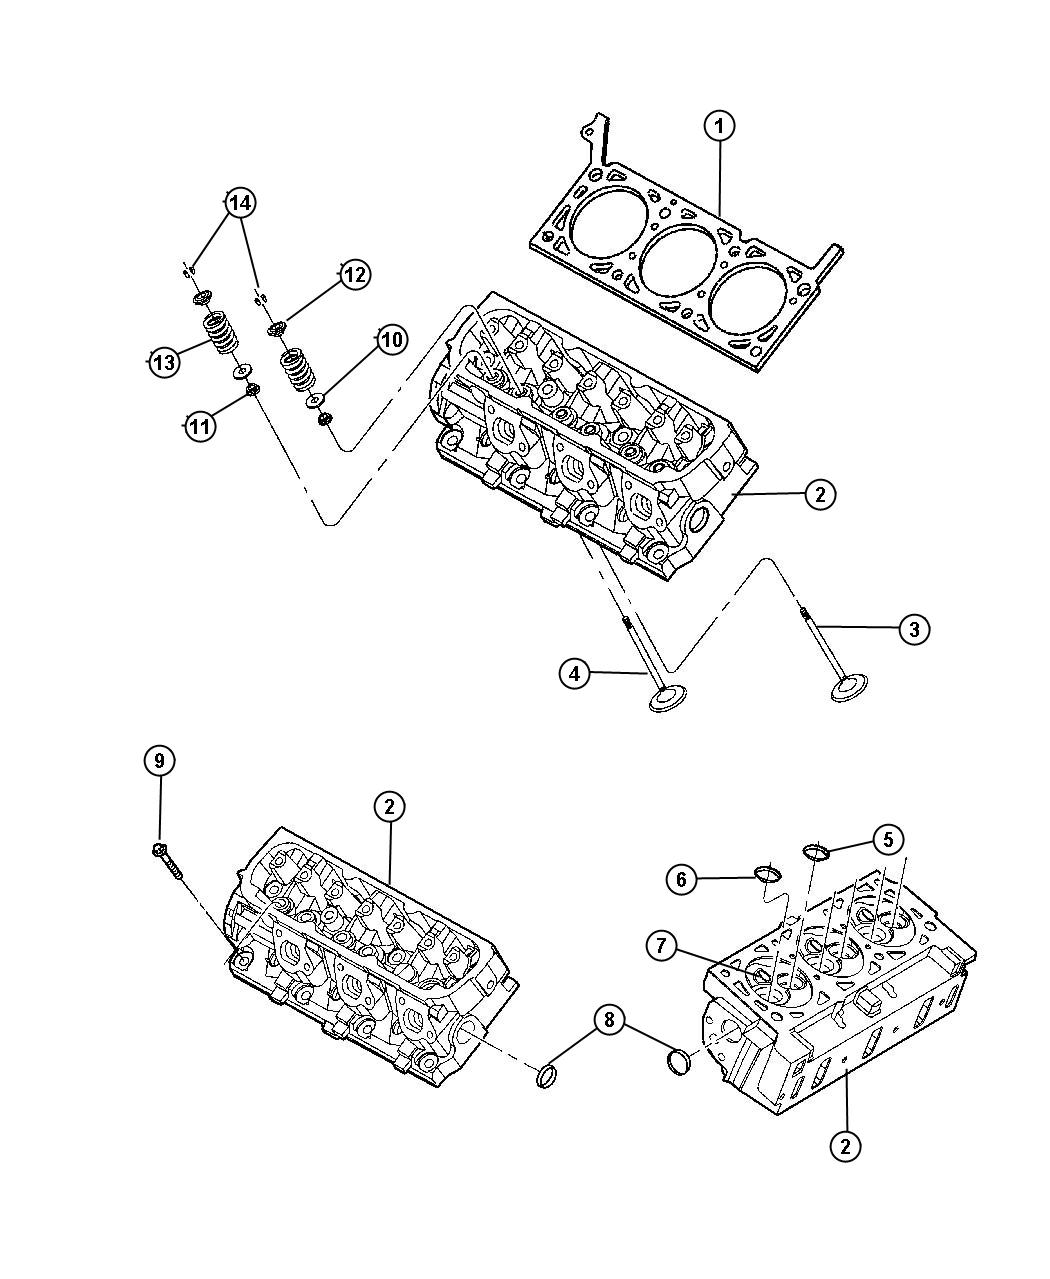 Cylinder Head And Components 3.3L [3.3L V6 OHV Engine]. Diagram